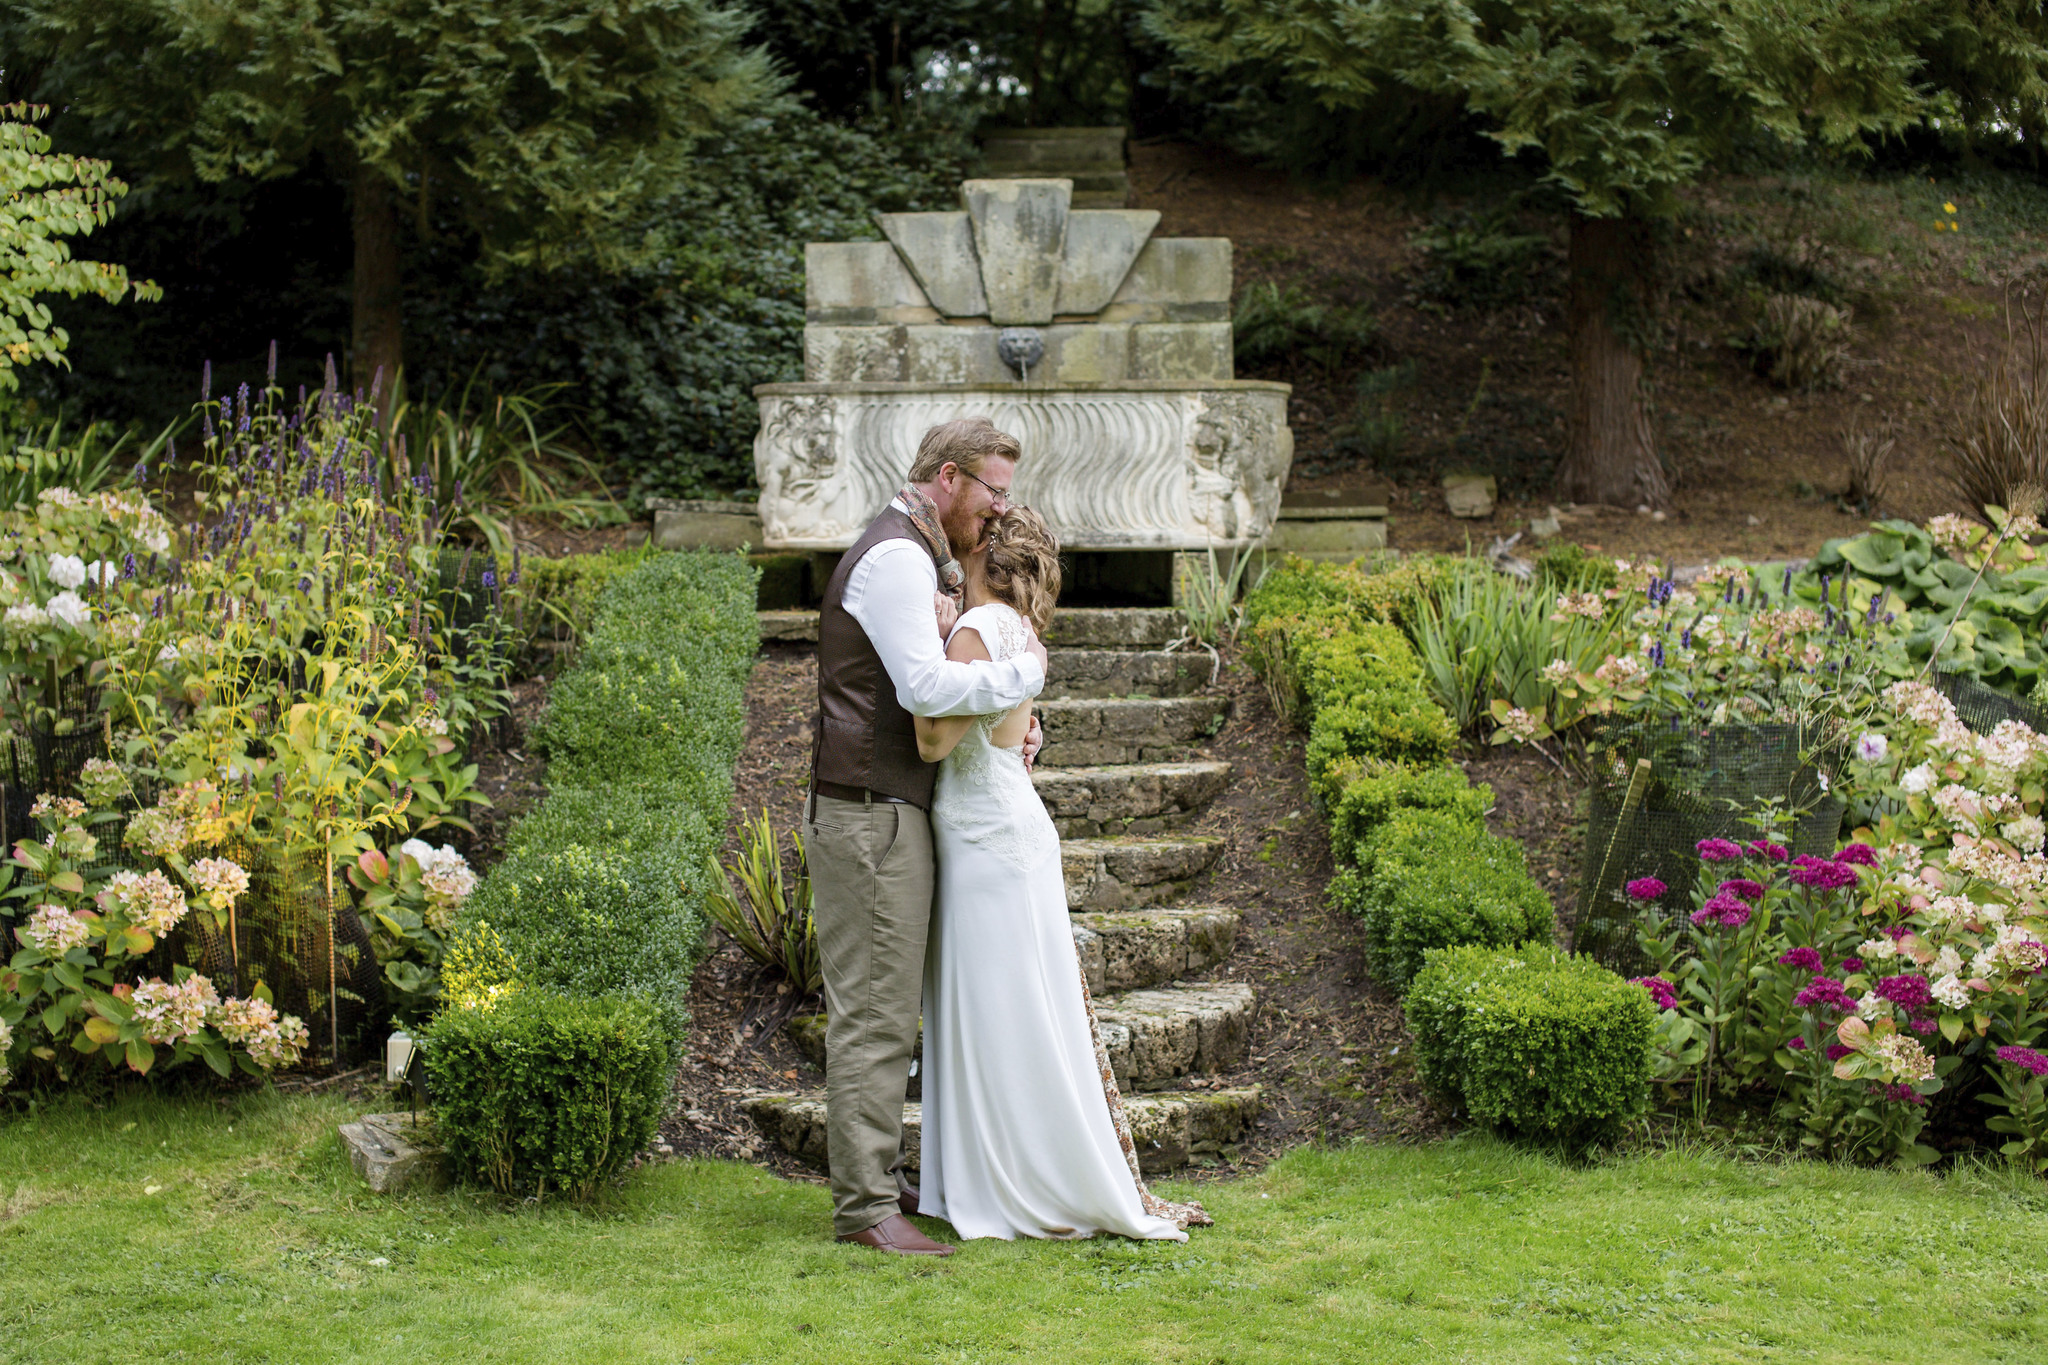 aldby bride and groom.jpg